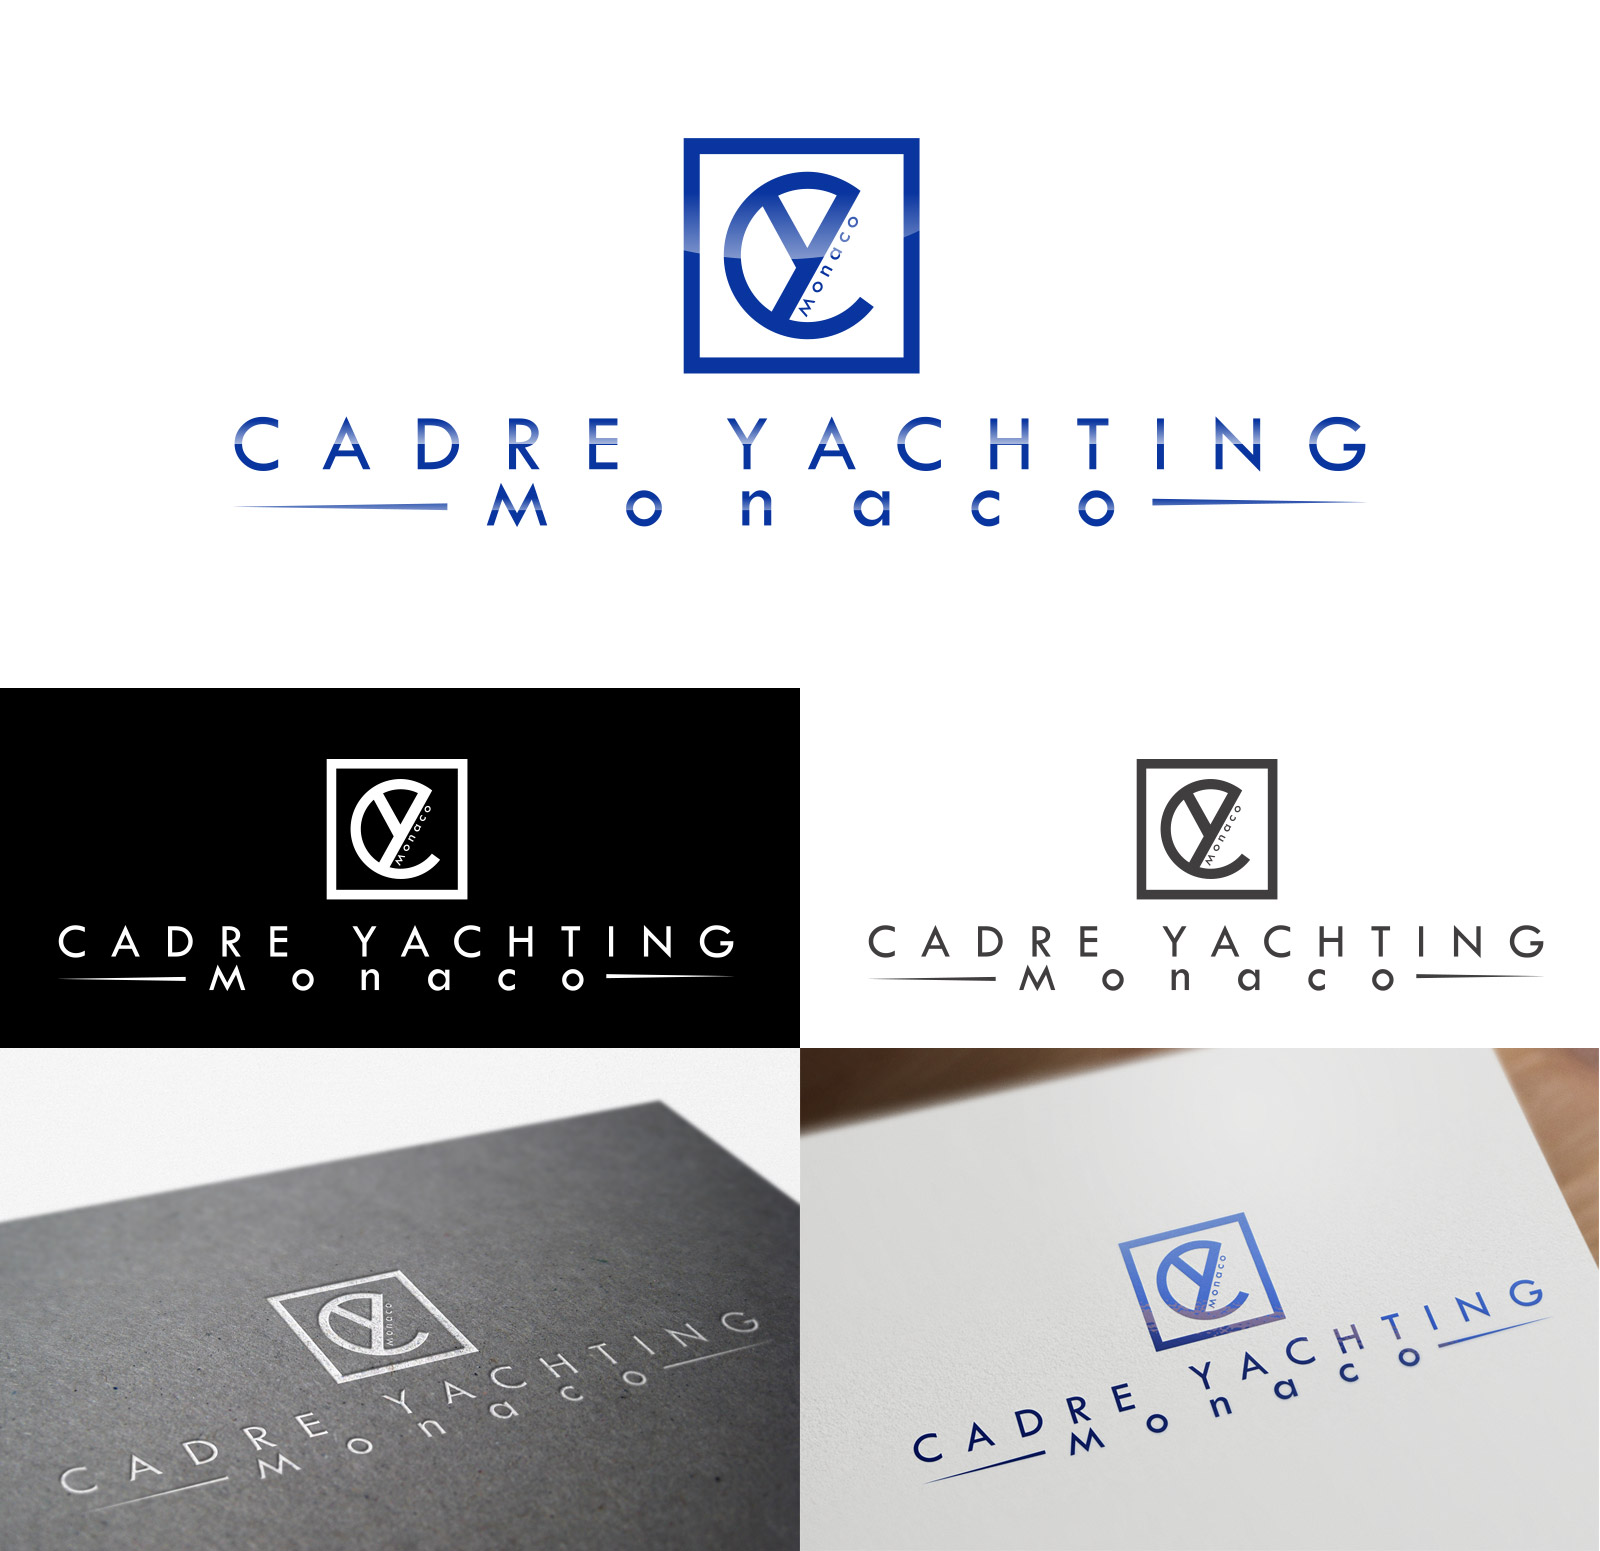 Logo Design by olii - Entry No. 367 in the Logo Design Contest New Logo Design for Cadre Yachting Monaco.